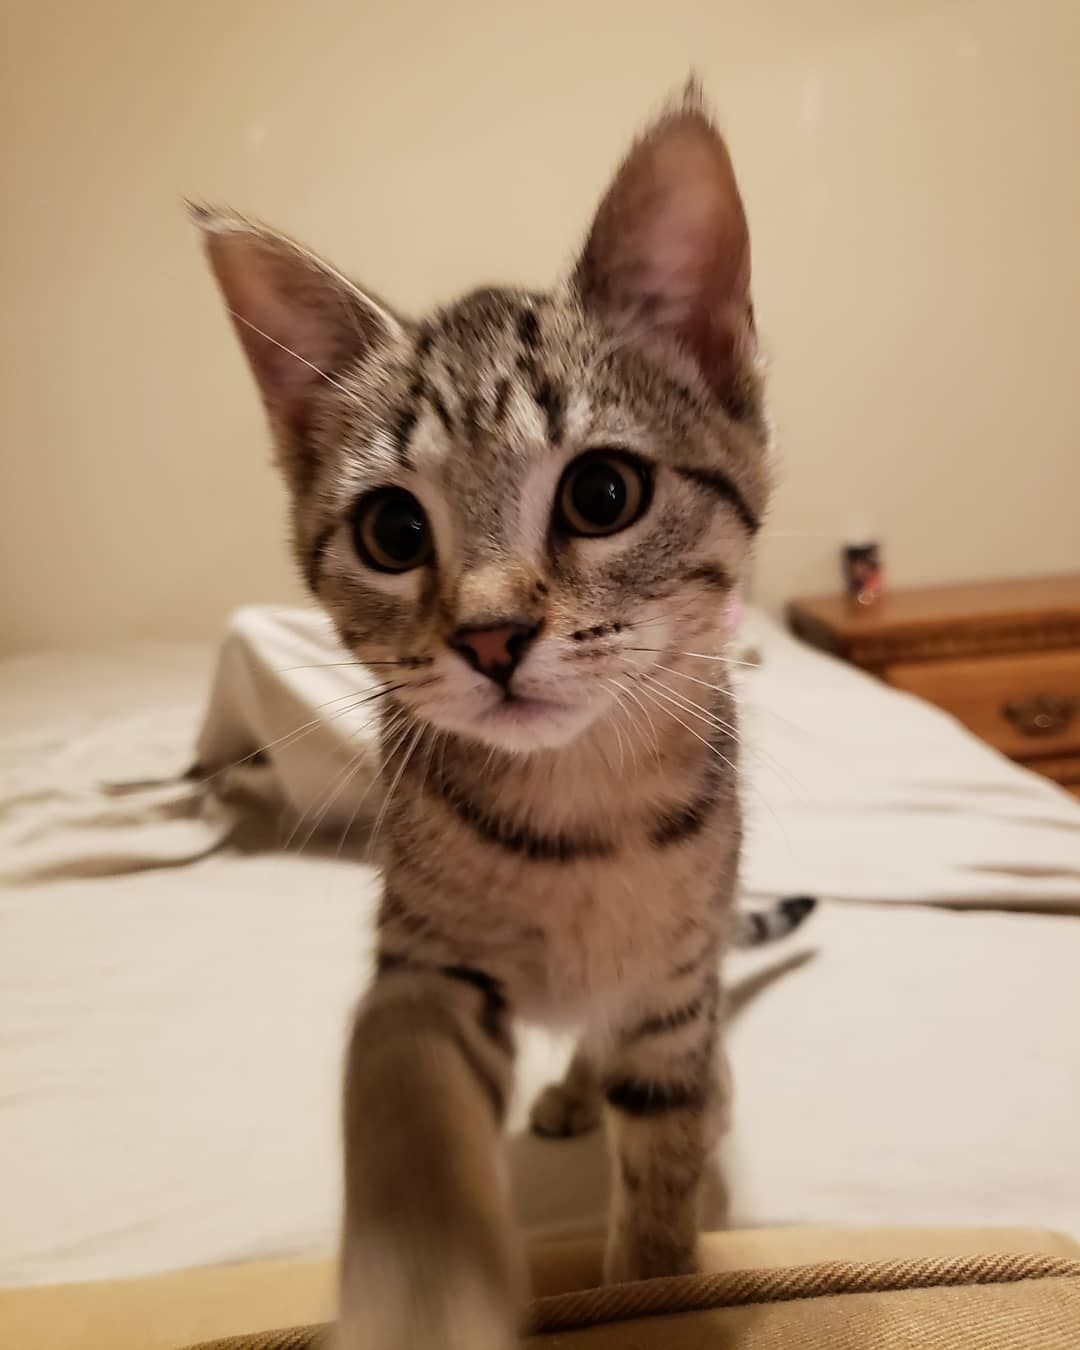 The Kitten Agent On Instagram This Sweet Girl Is Coming Right At Ya Make Sure To Swipe For An Adorable Close Up So Just A M Kitten Sweet Girls Adorable